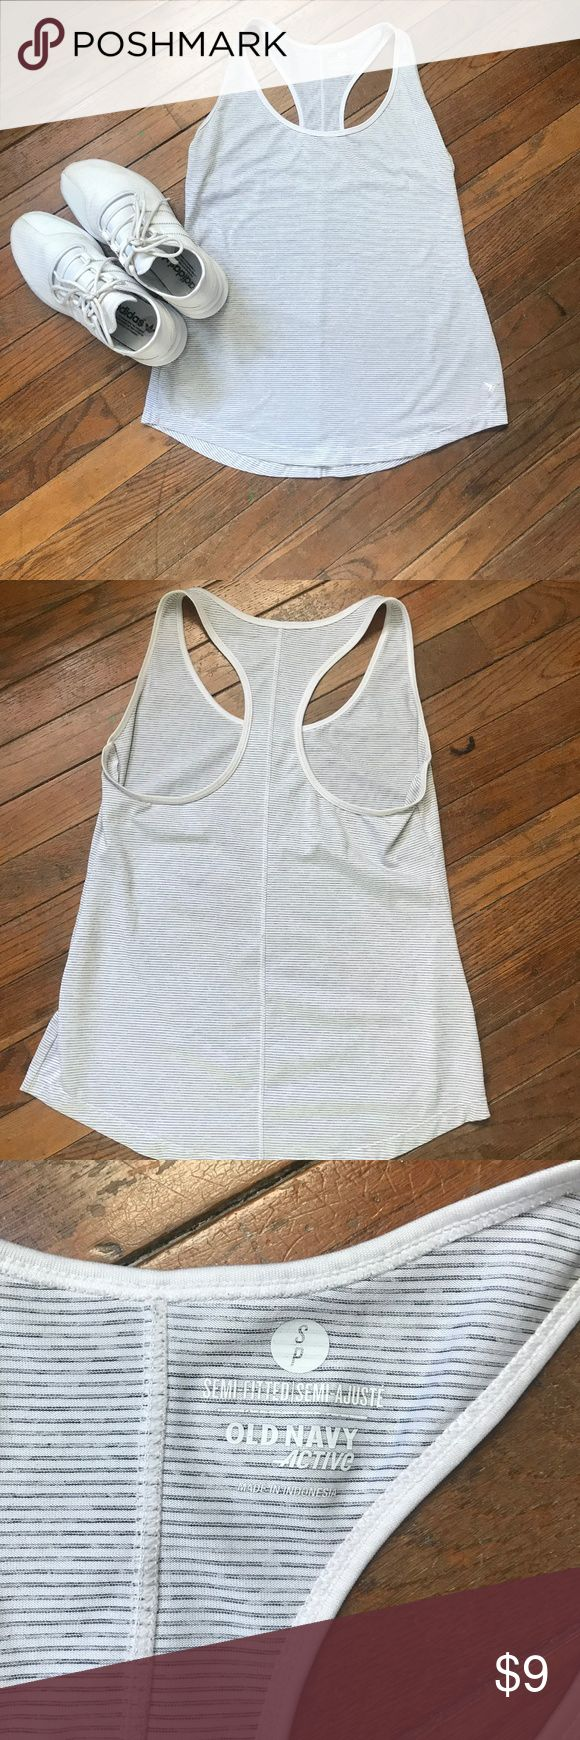 Old Navy Racerback Performance Striped Tank Rounded neckline.  Racerback.  Slight hi-lo hem.  Go-Dry: superior wicking keeps you comfortable and dry.  Super soft, moisture-wicking jersey, with added stretch.  Ultra-Light jersey is as versatile as your favorite everyday tank but built for peak active performance.  Open to offers :) no trades! Old Navy Tops Tank Tops